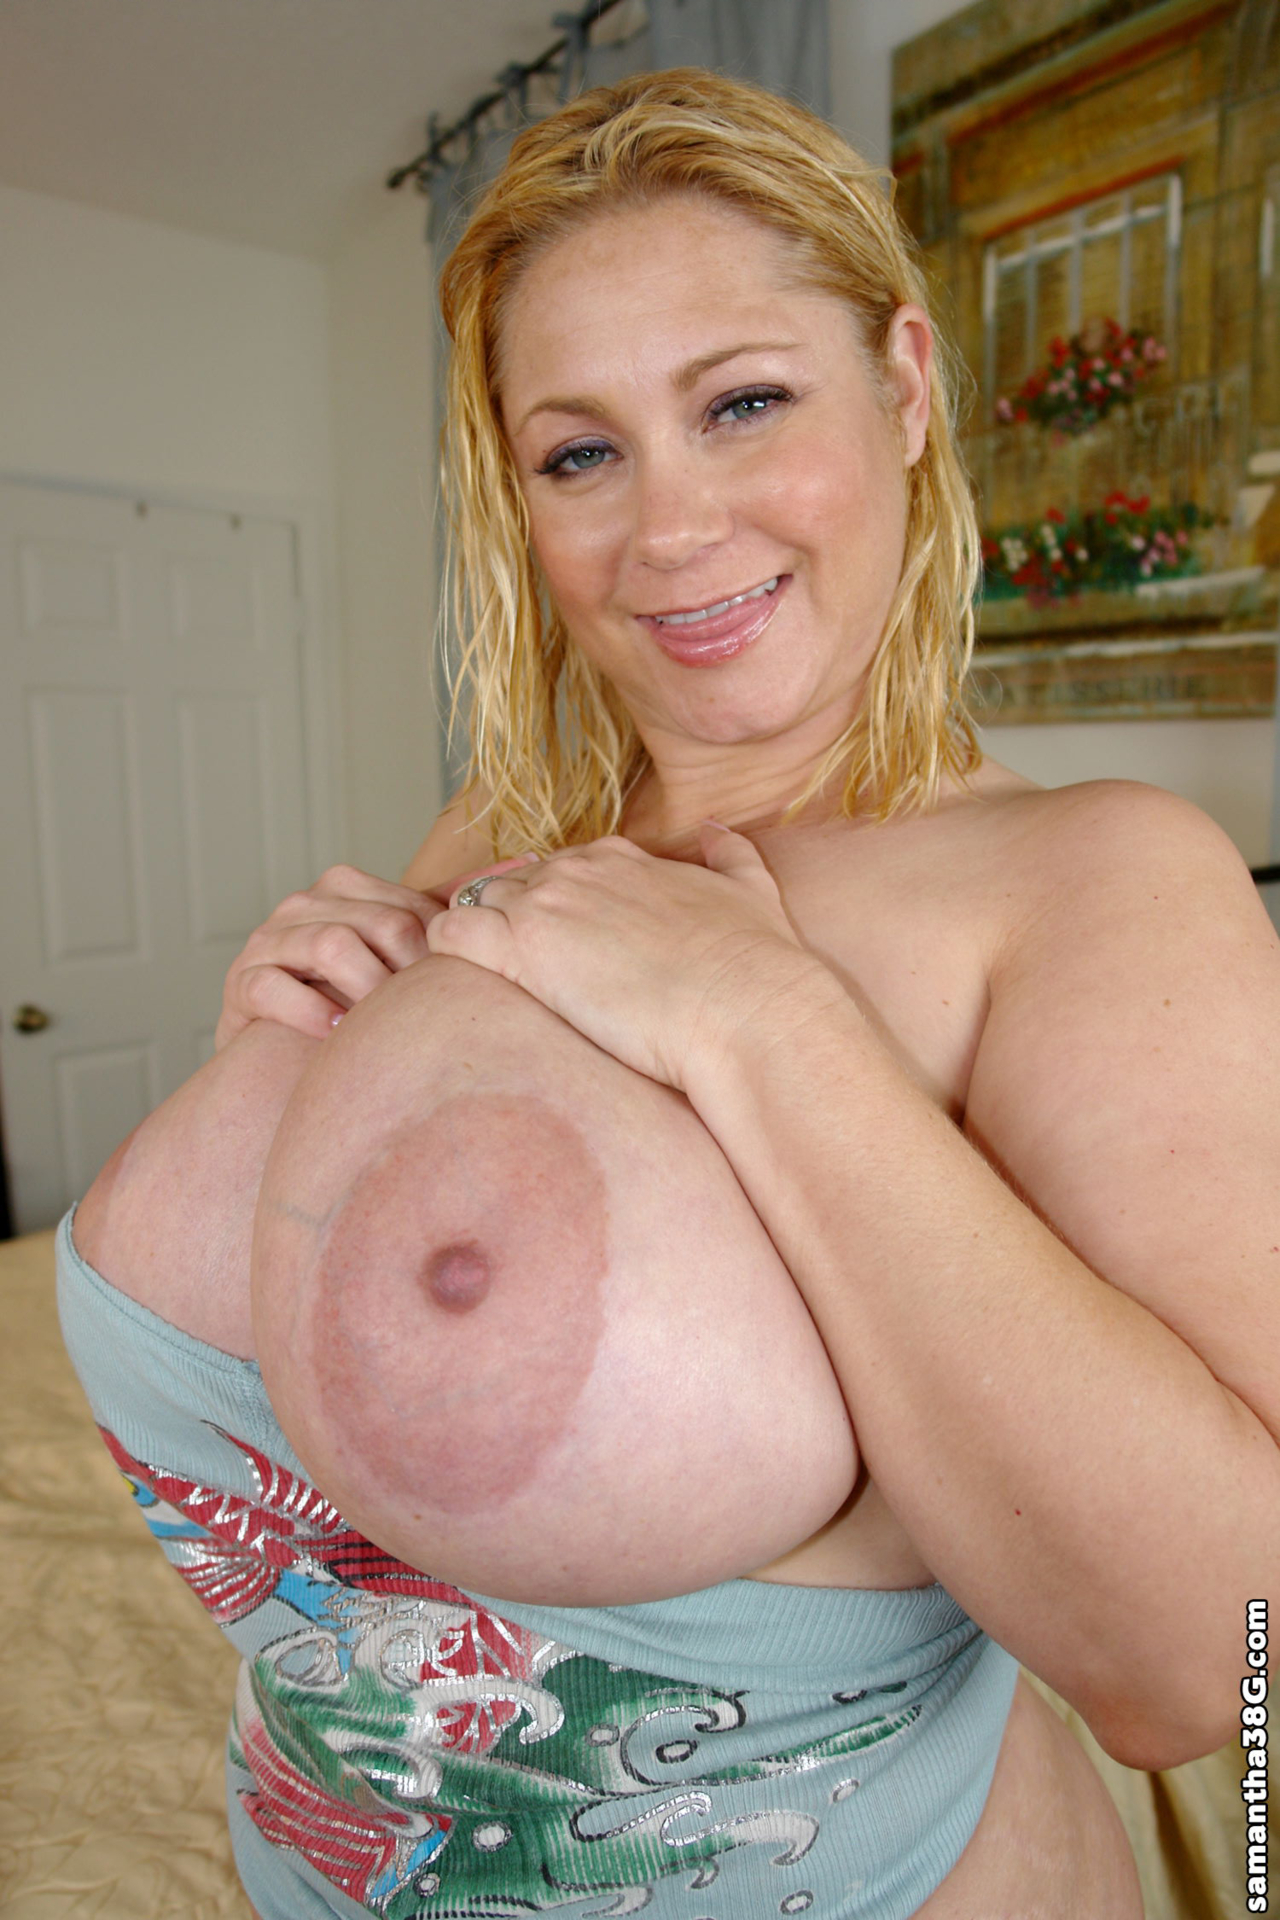 Remarkable phrase boobs bbw 38 gg samantha big gradually. something